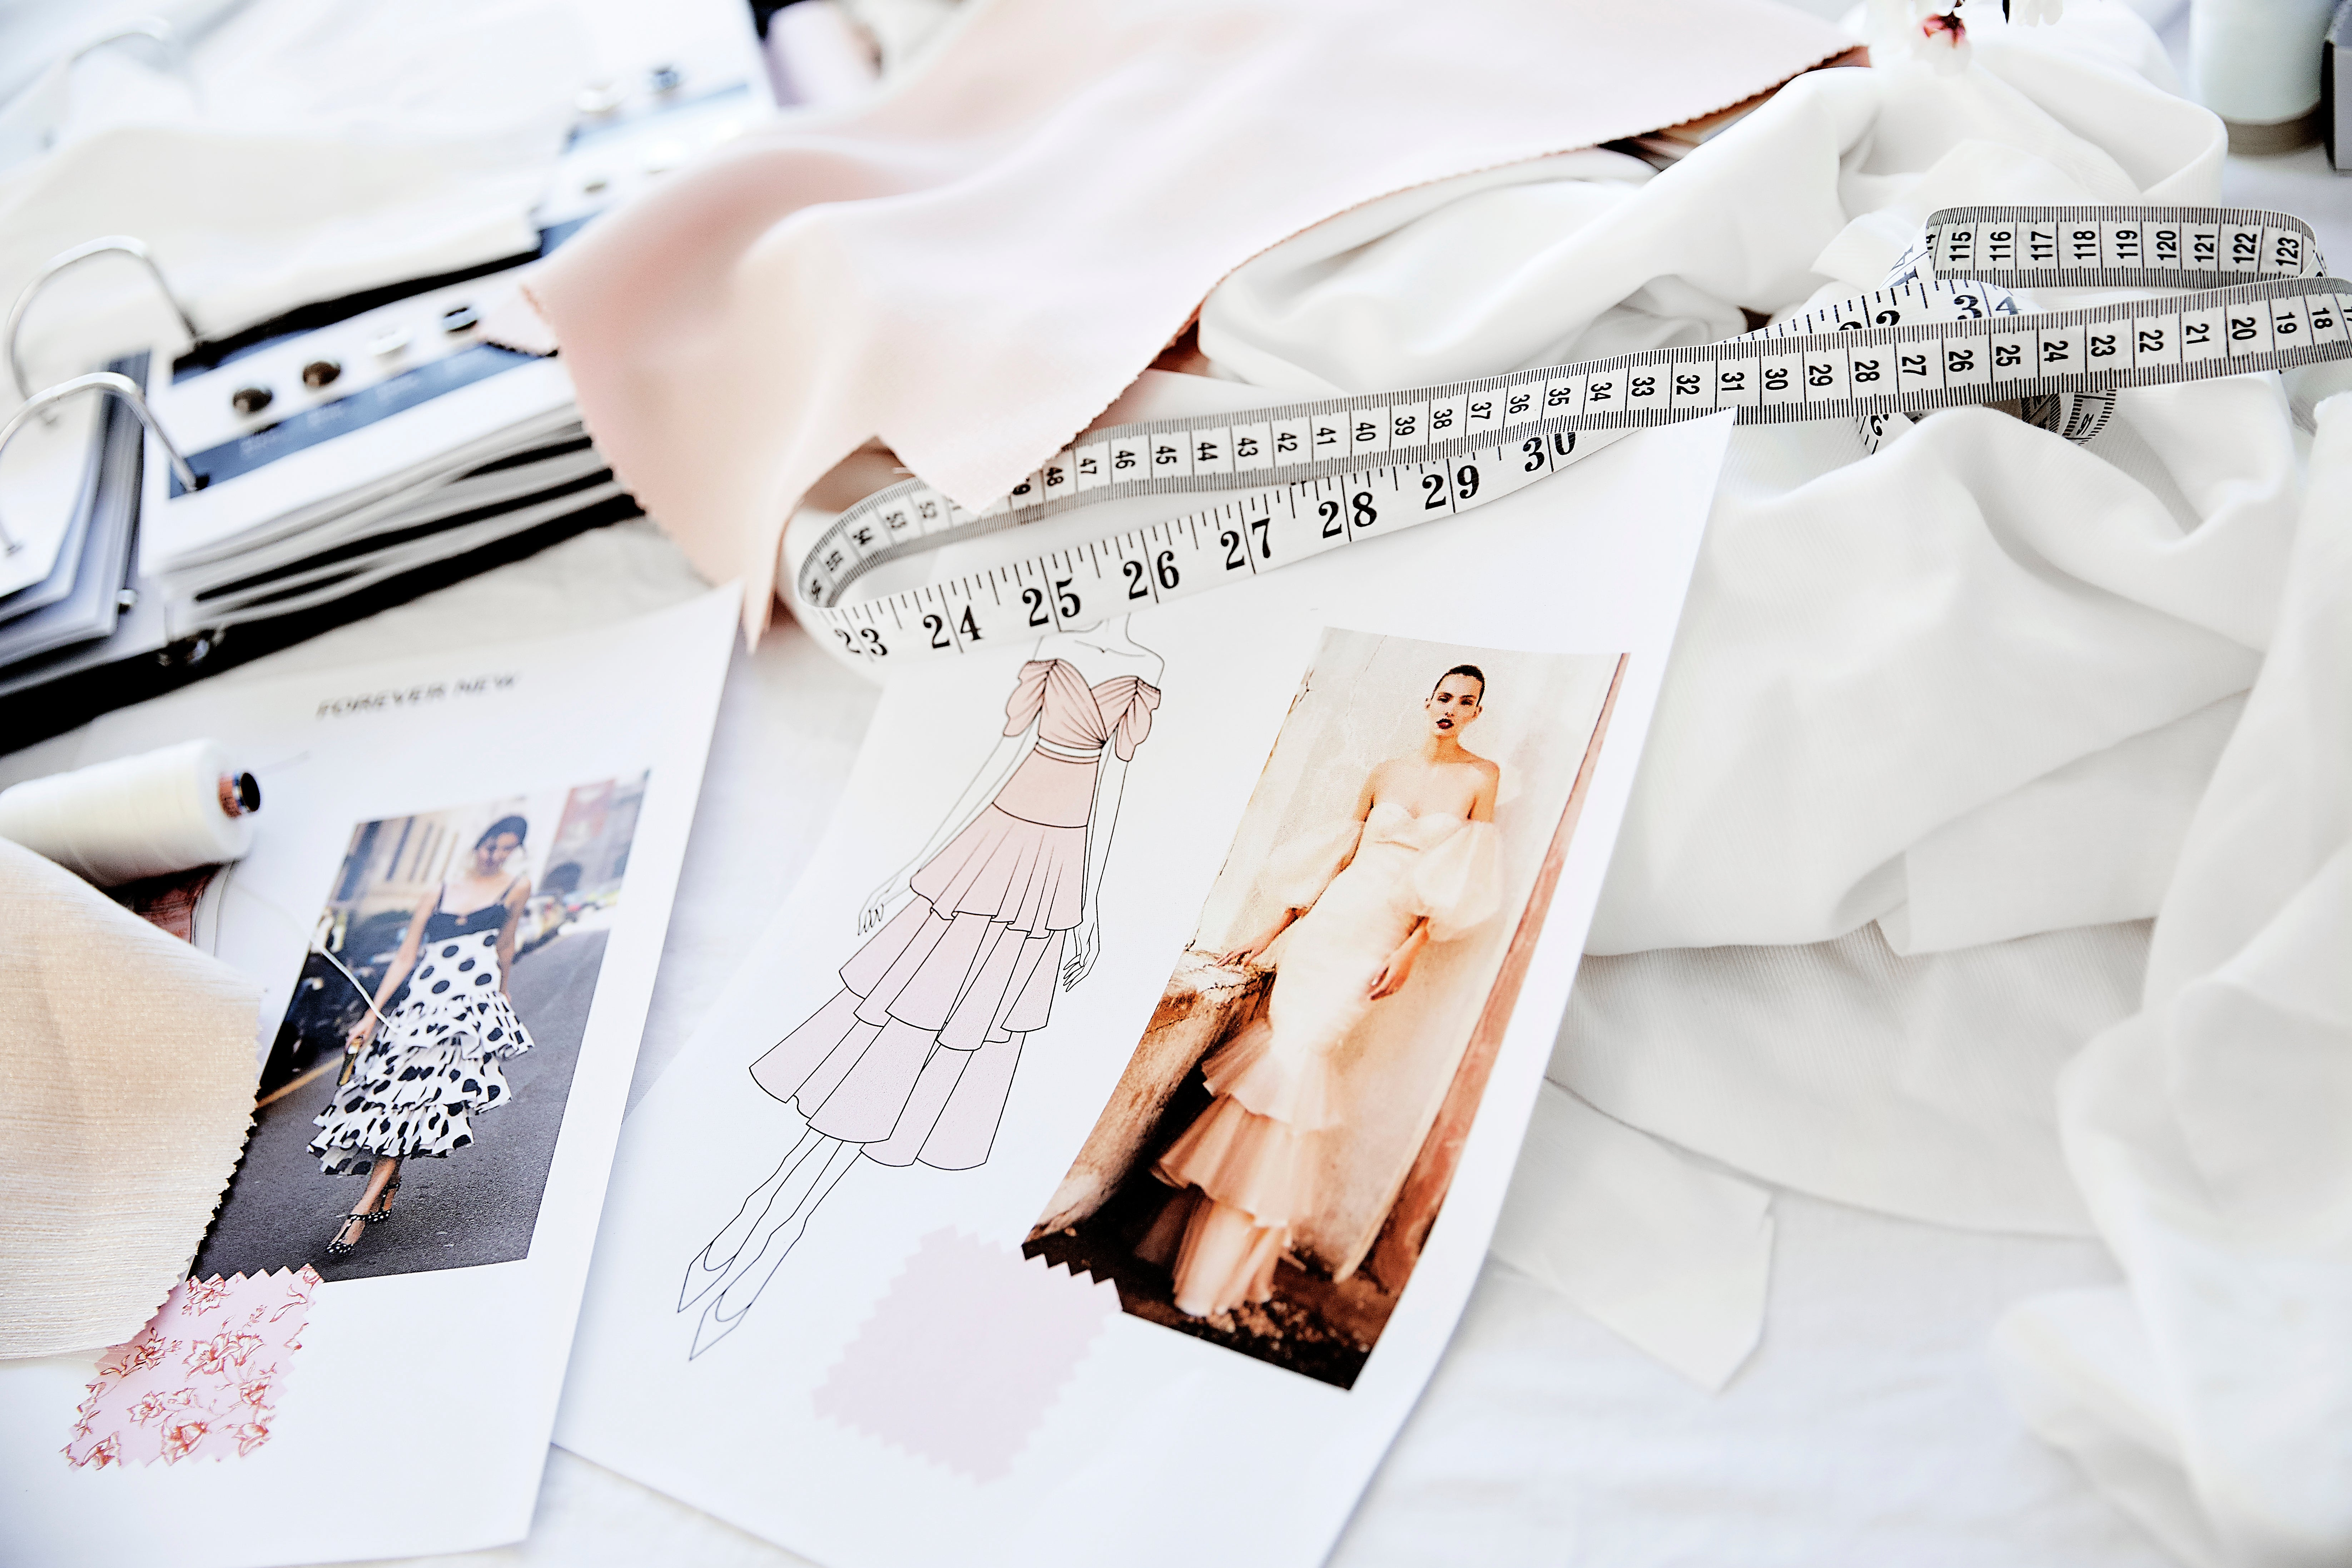 Mood board and fashion illustration sketches.